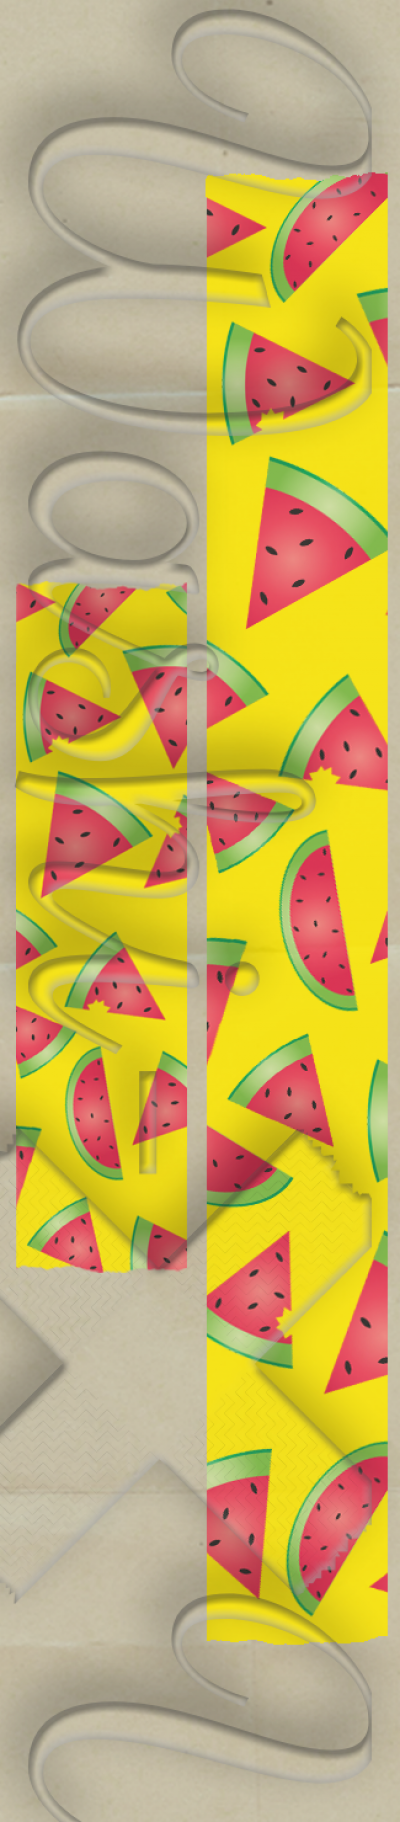 Watermelon patterned washi tape style 1